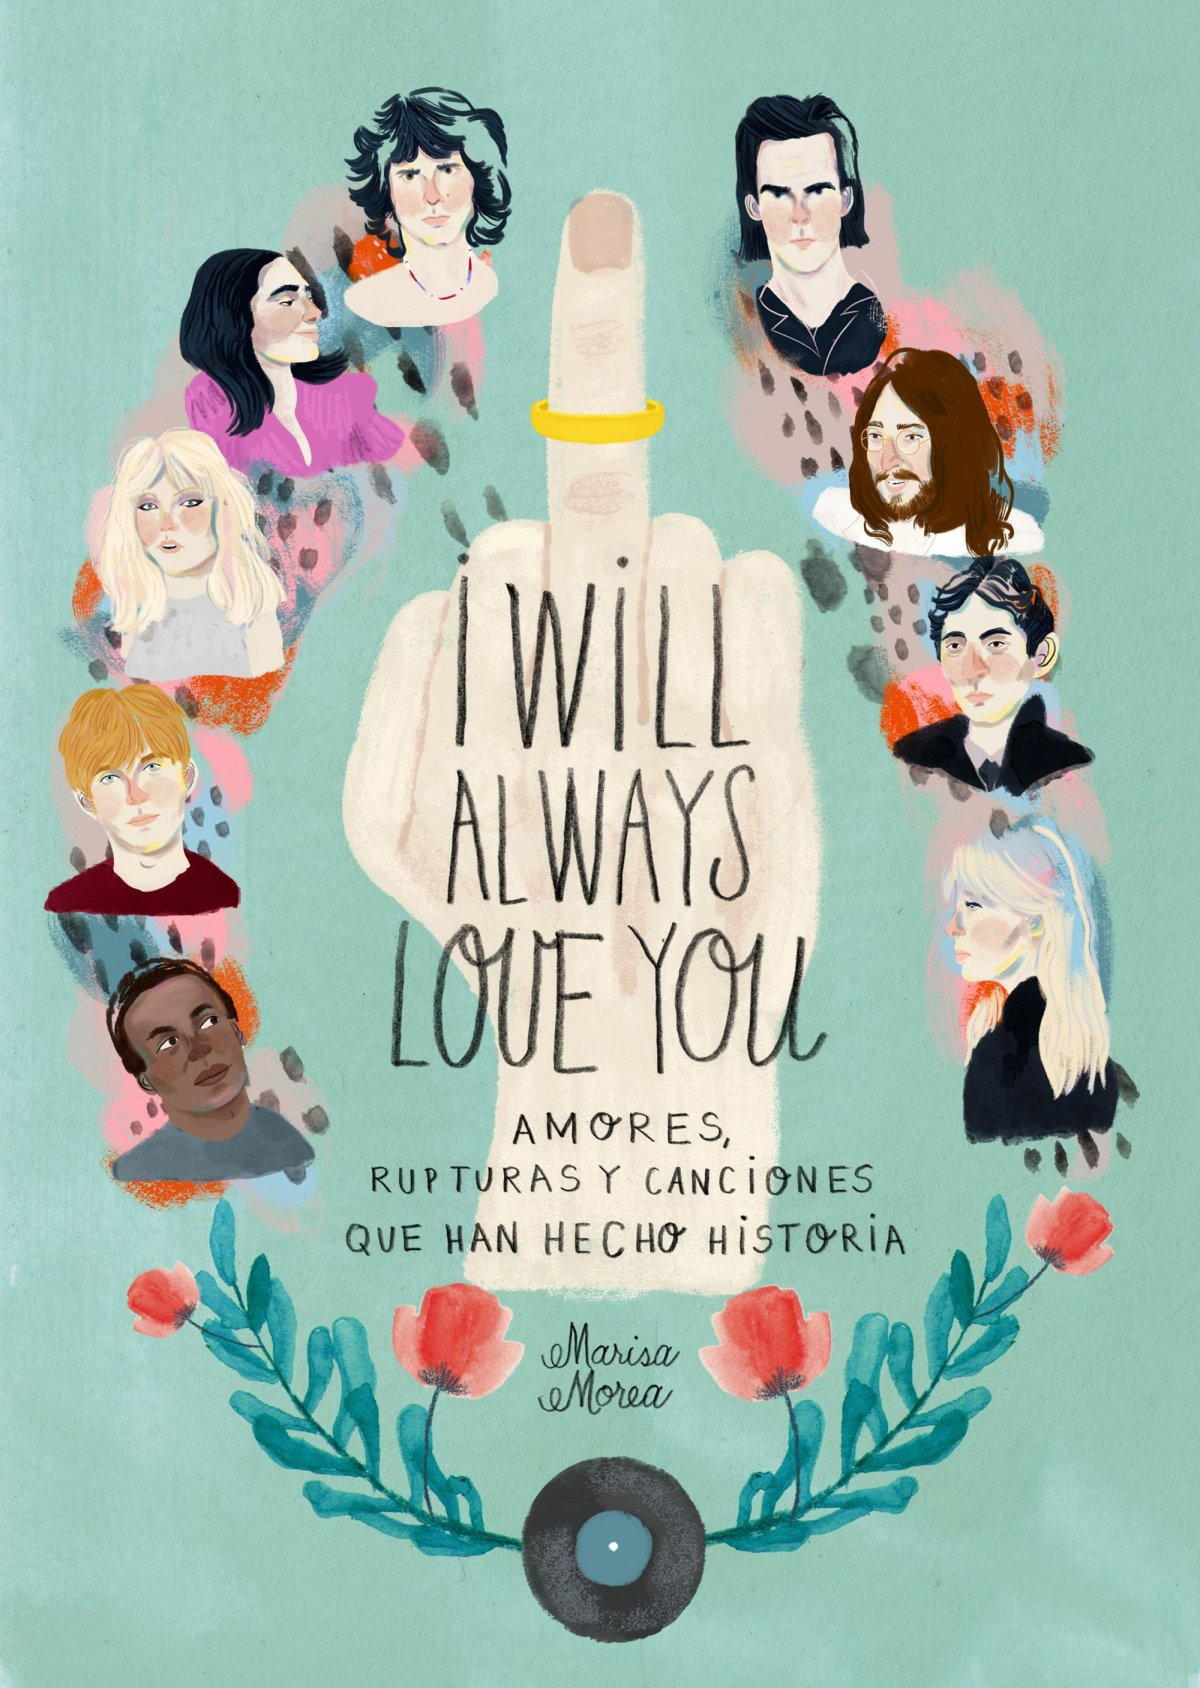 I will always love you: Amores, rupturas y canciones que han hecho historia